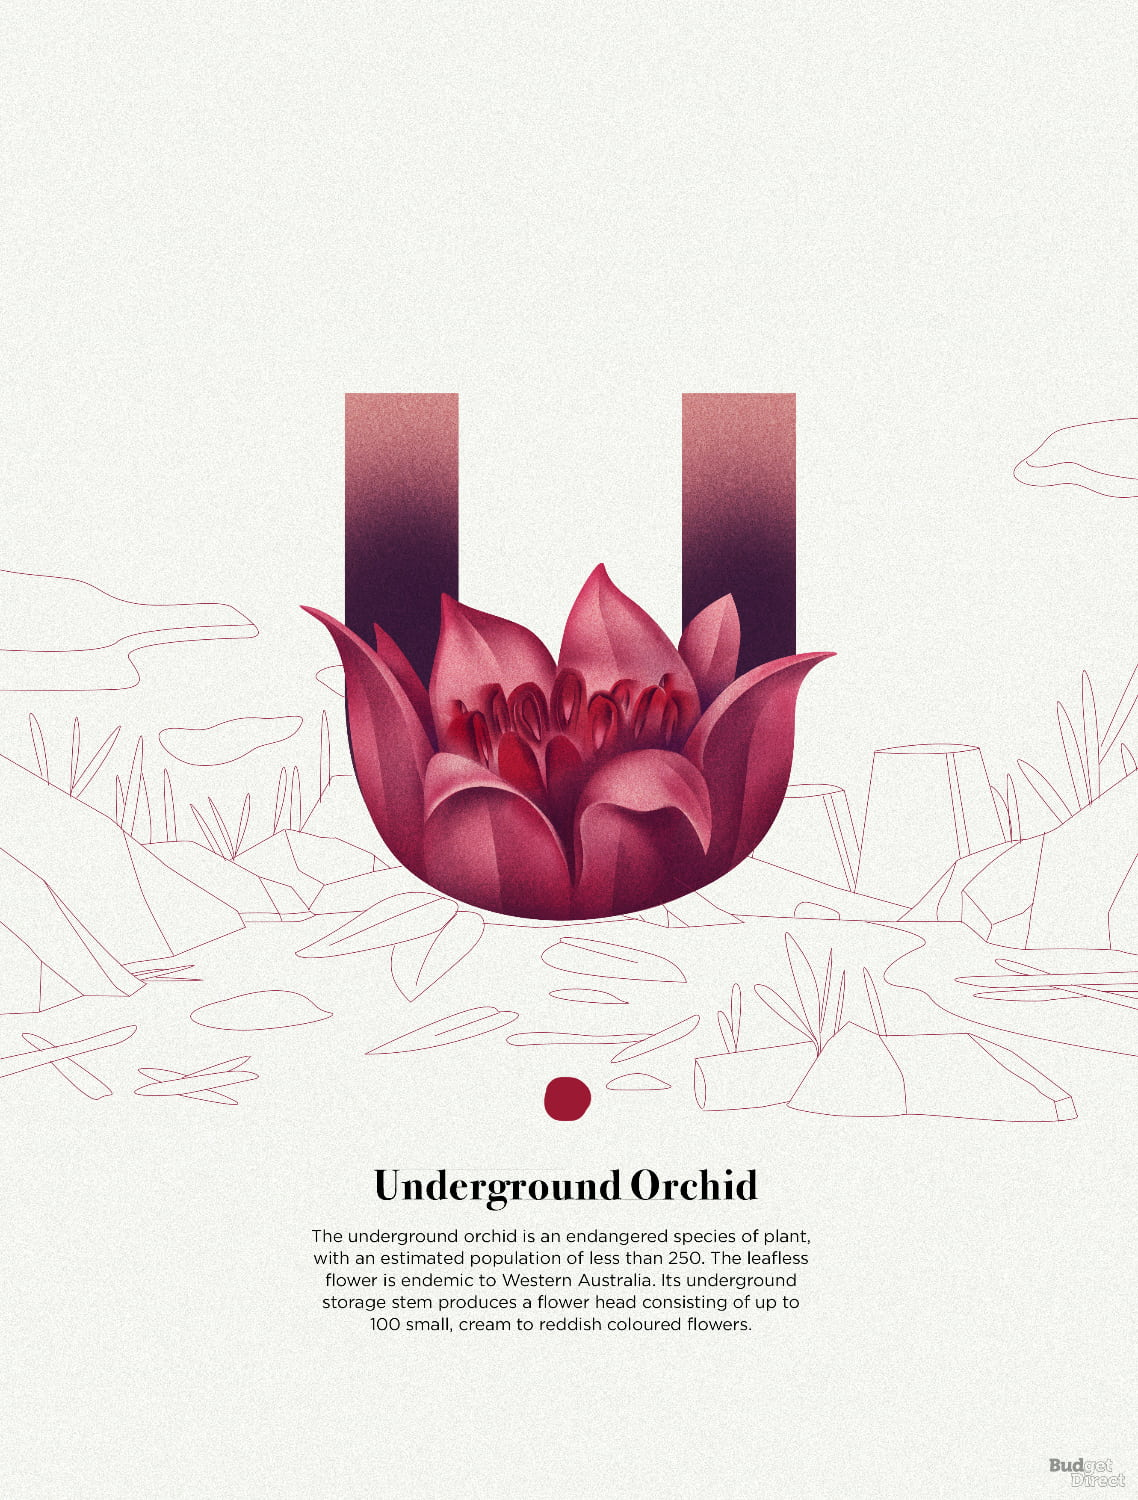 U is for Underground Orchid